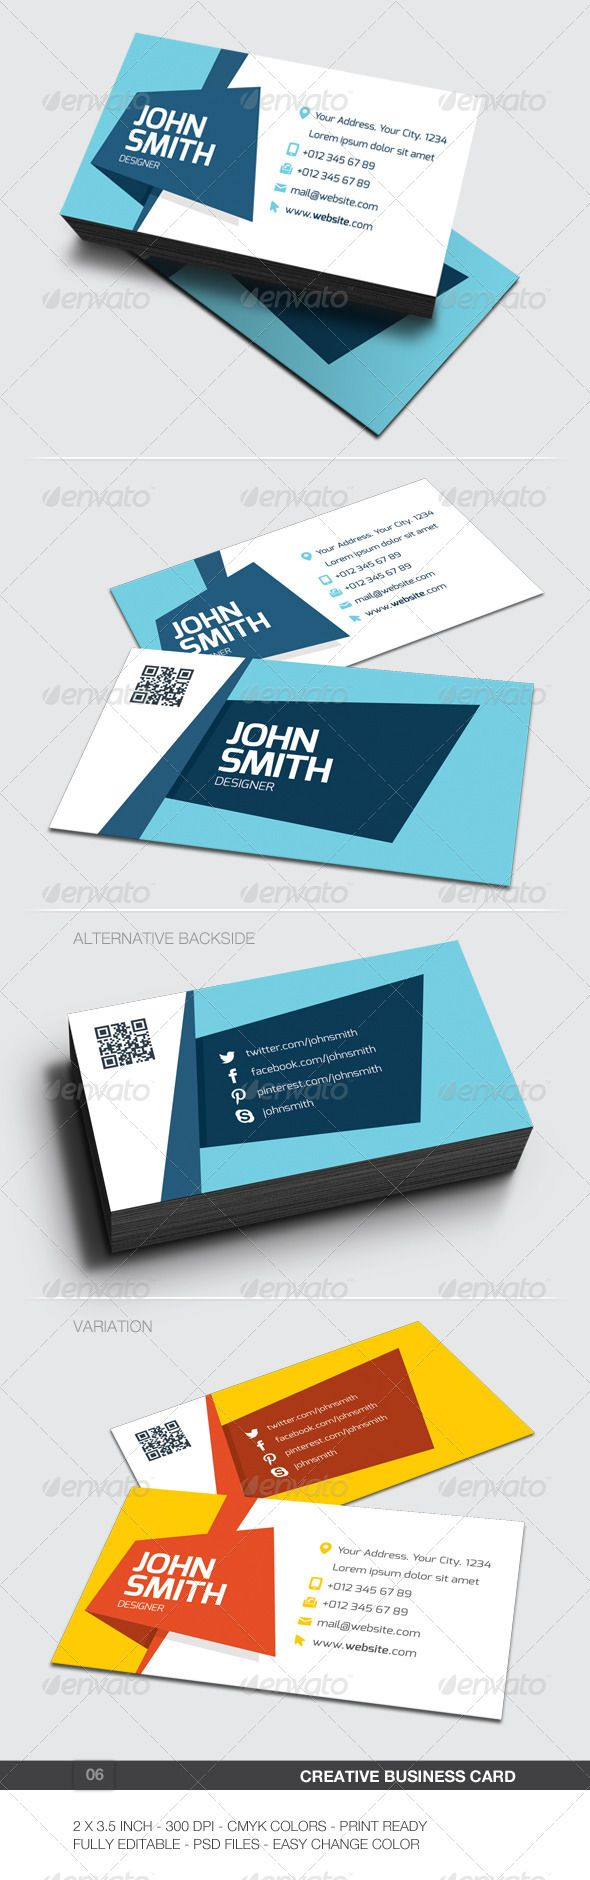 53 best Design Ideen: Business Cards images on Pinterest ...